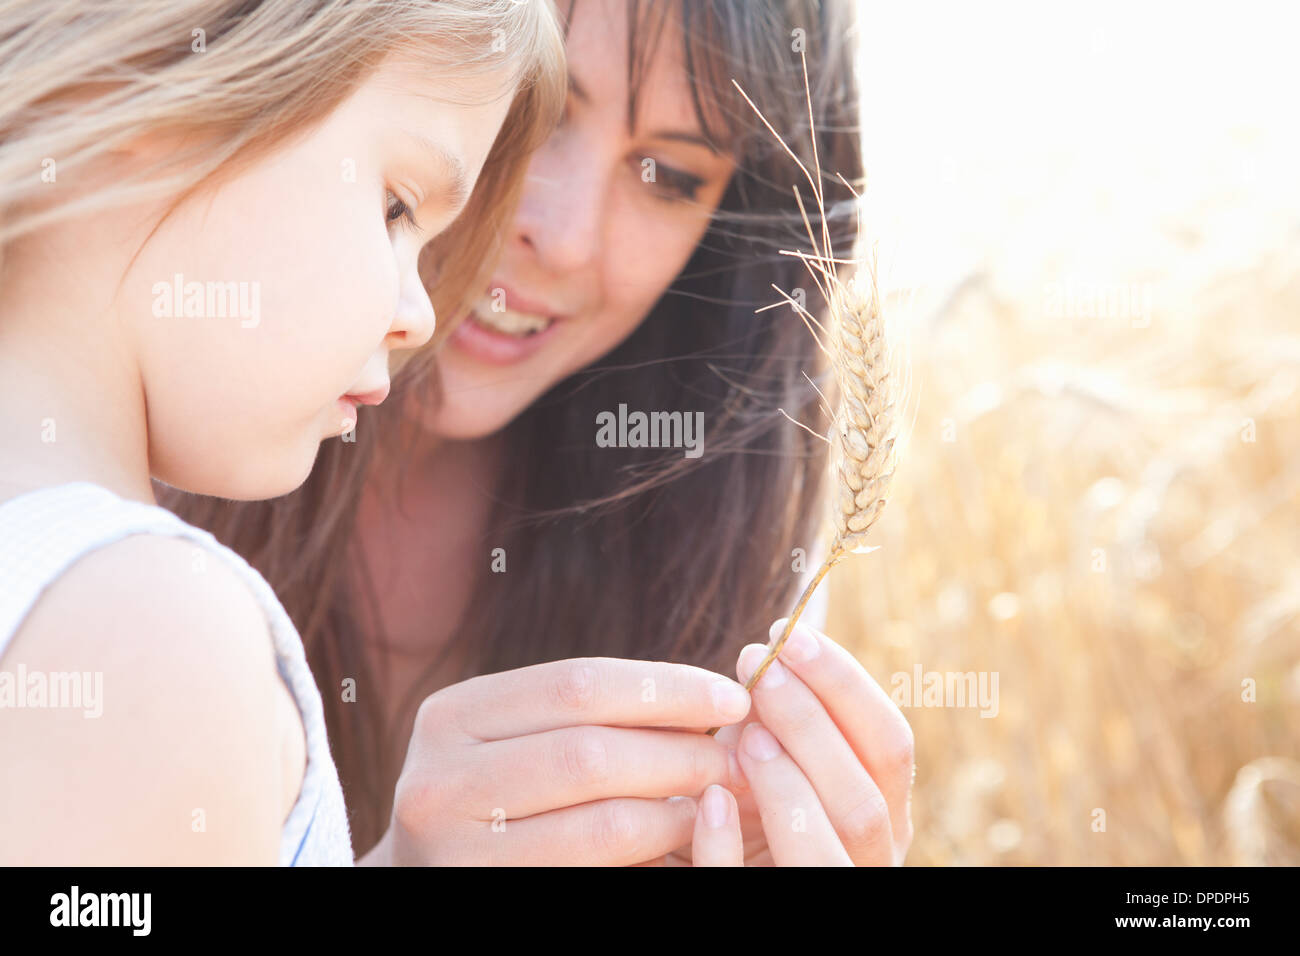 Mother and daughter looking at grain of wheat - Stock Image